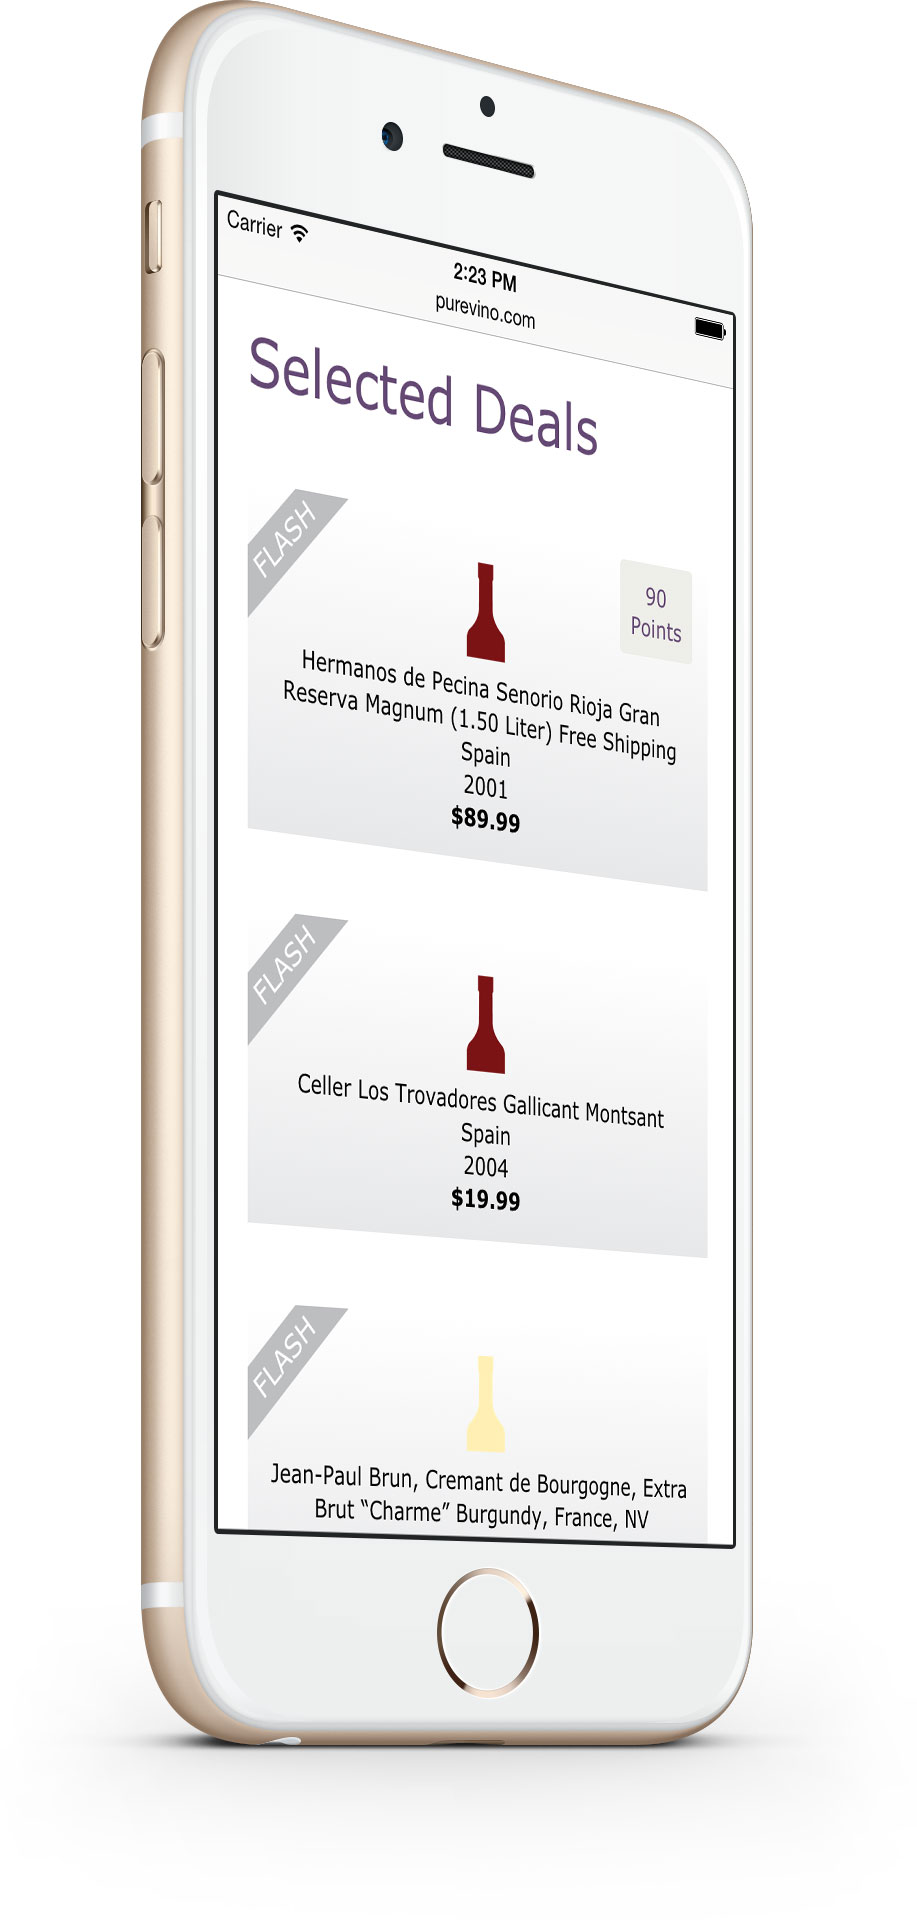 Pure Vino - Selected Deals Page - on mobile